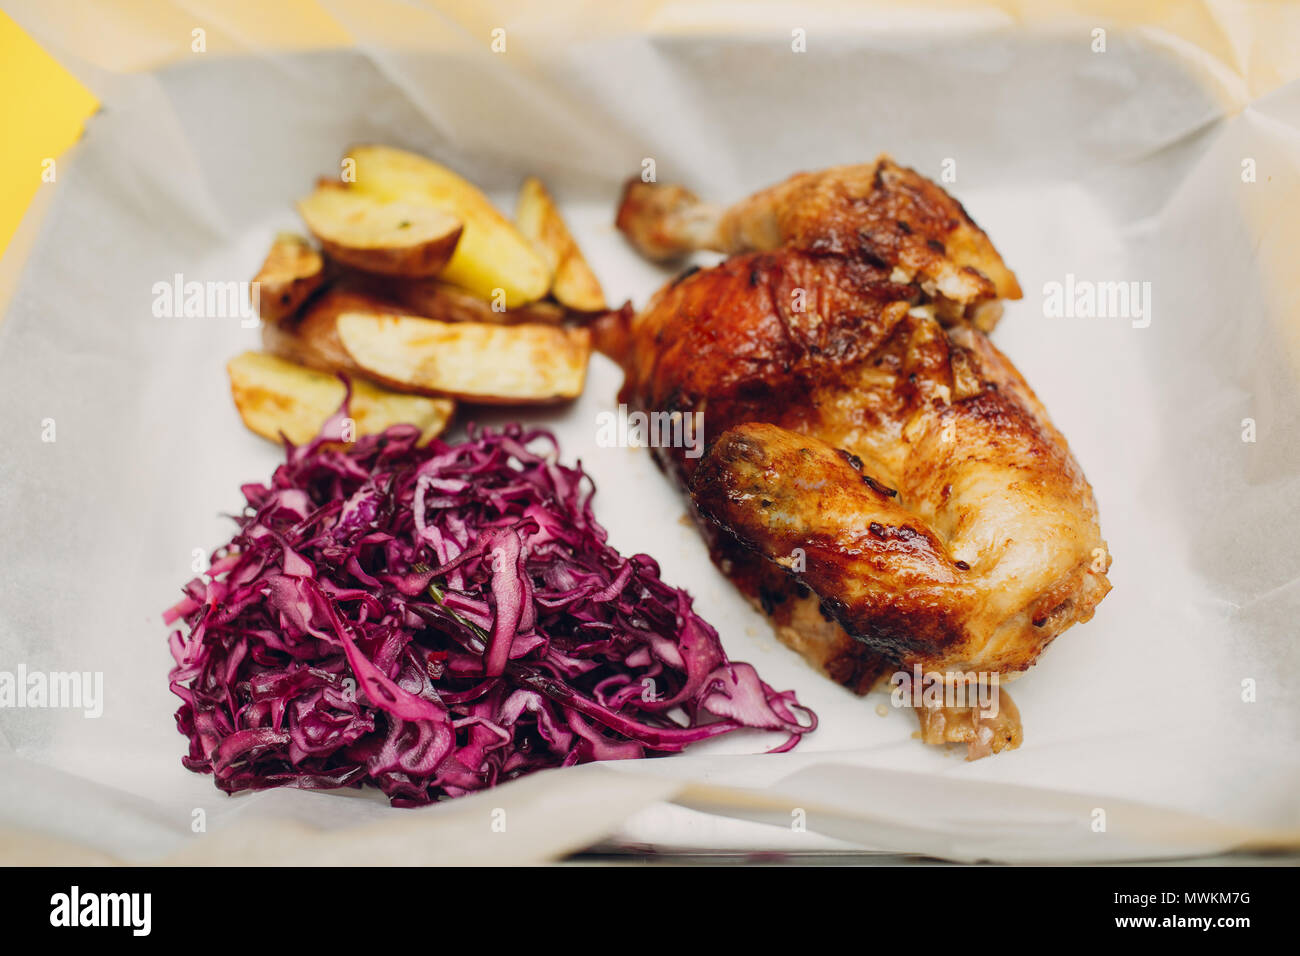 Food court concept  Grilled chicken with potato and cole